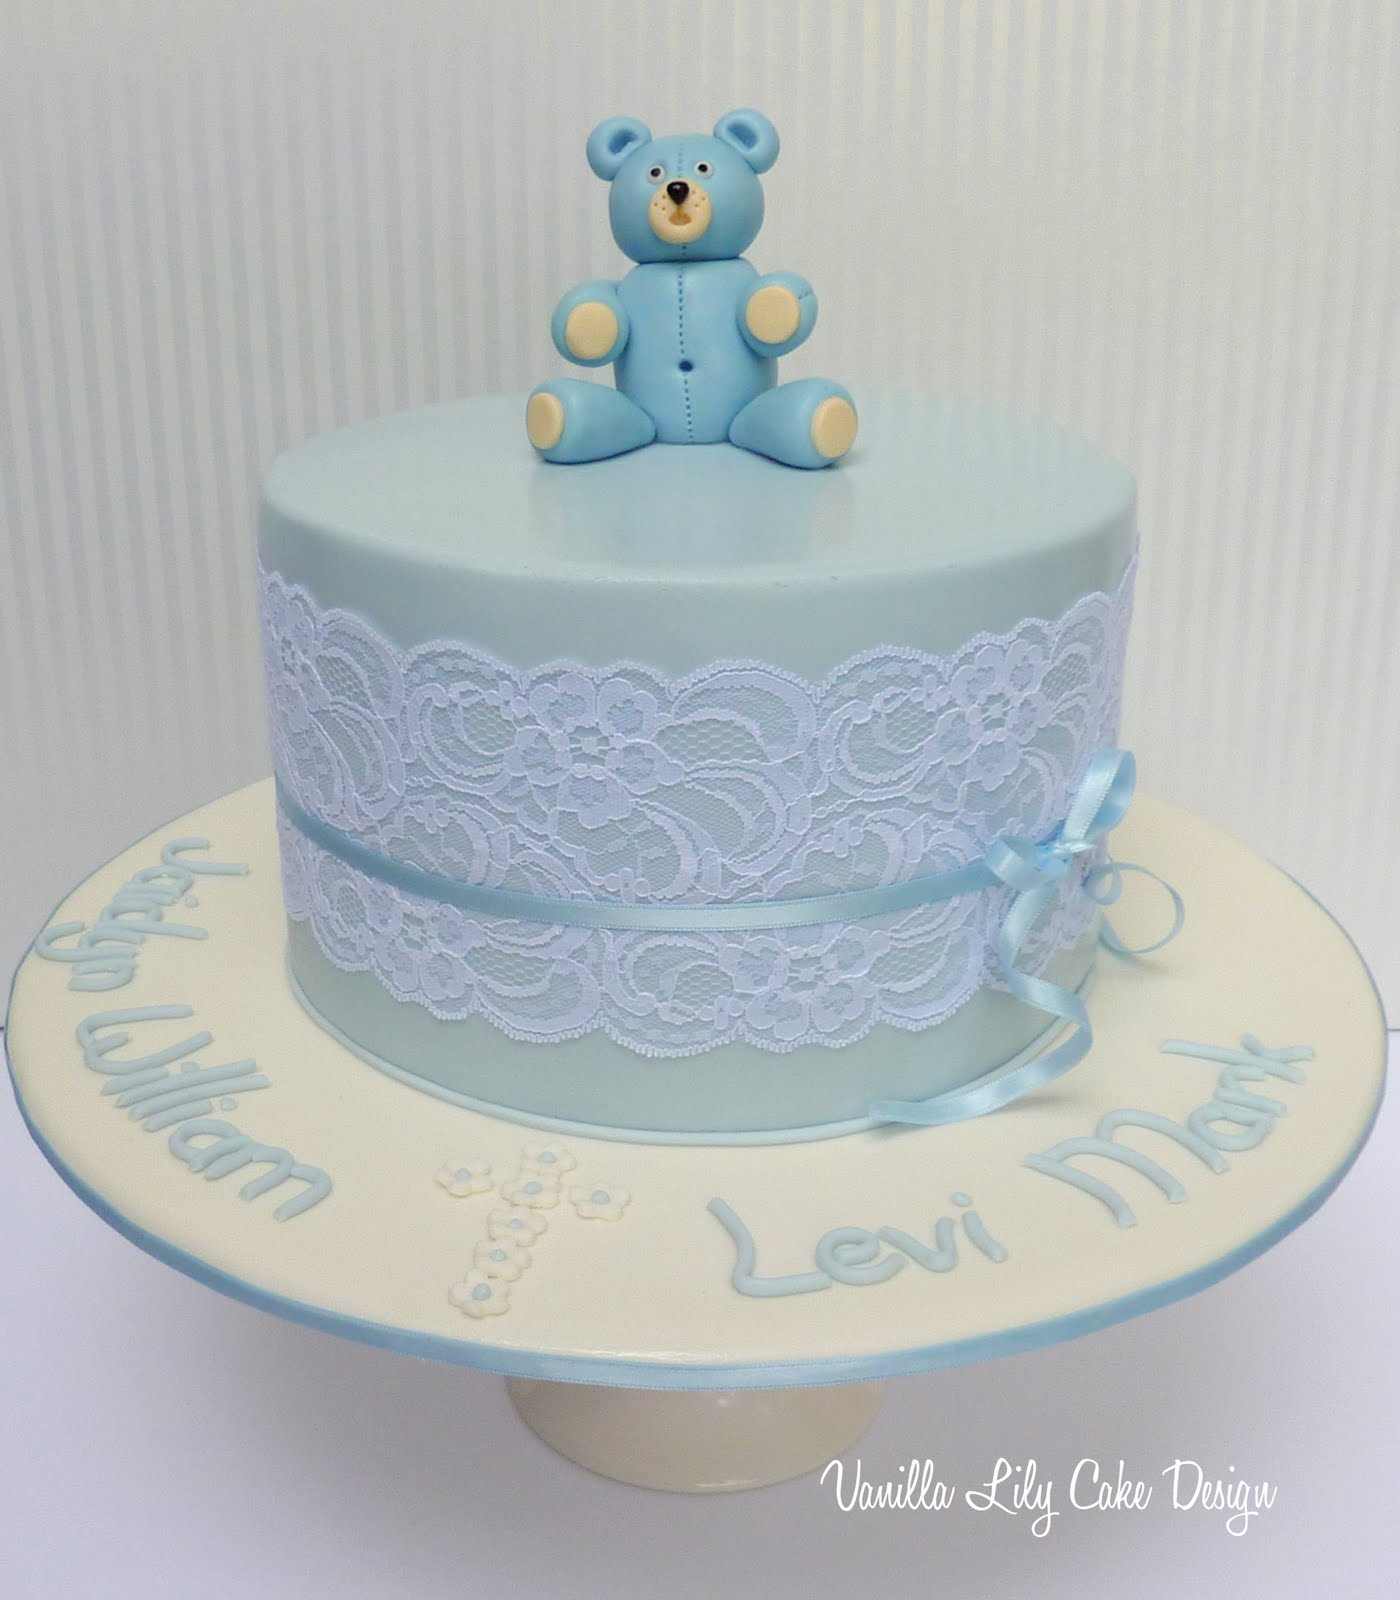 Goldilocks Cake Design For Christening : Vanilla Lily Cake Design: teddy bear christening cake.....